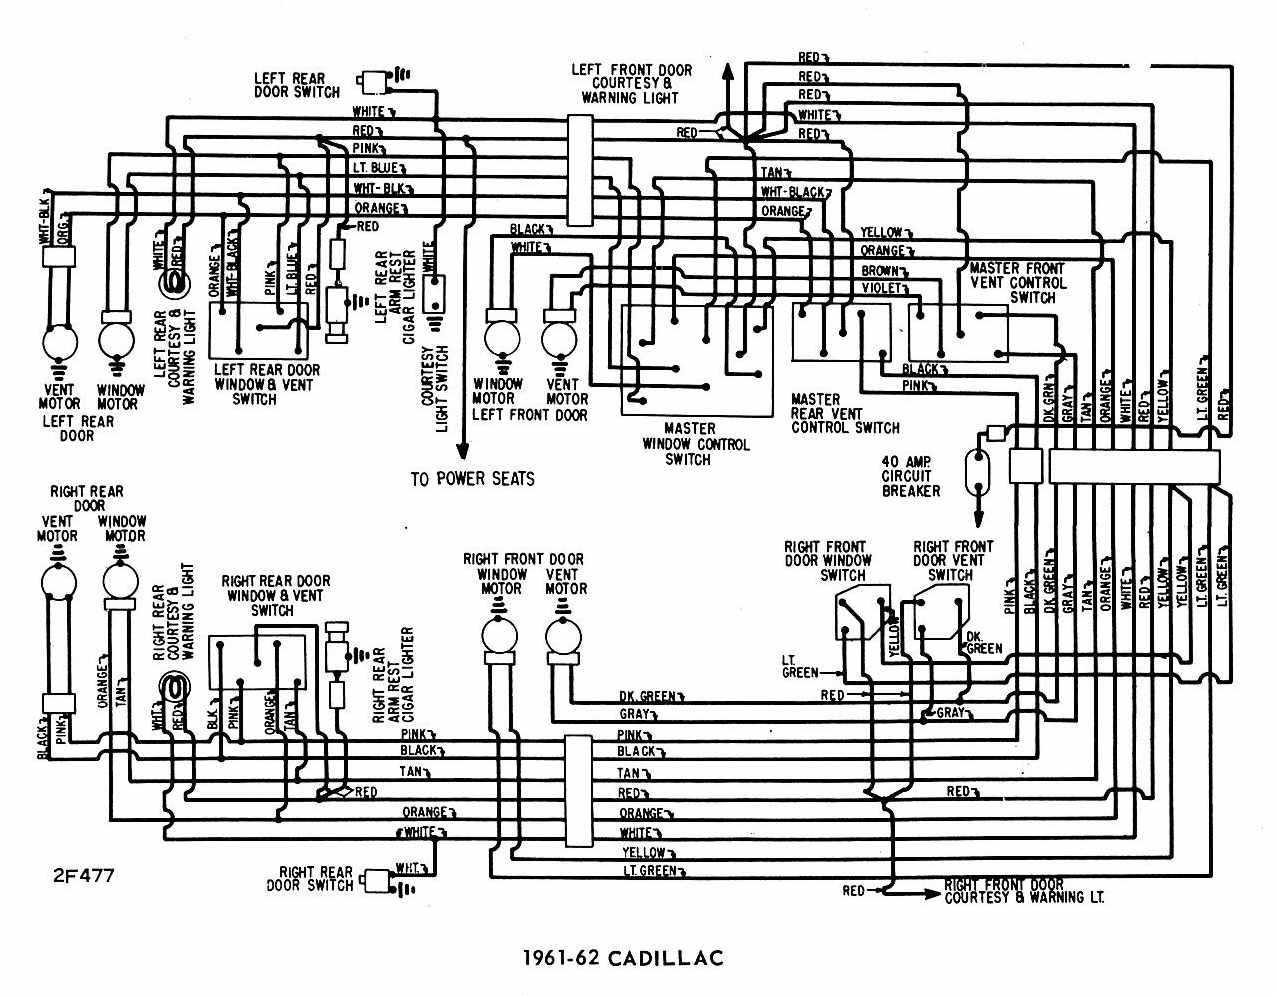 2000 chevrolet prizm fuse box diagram